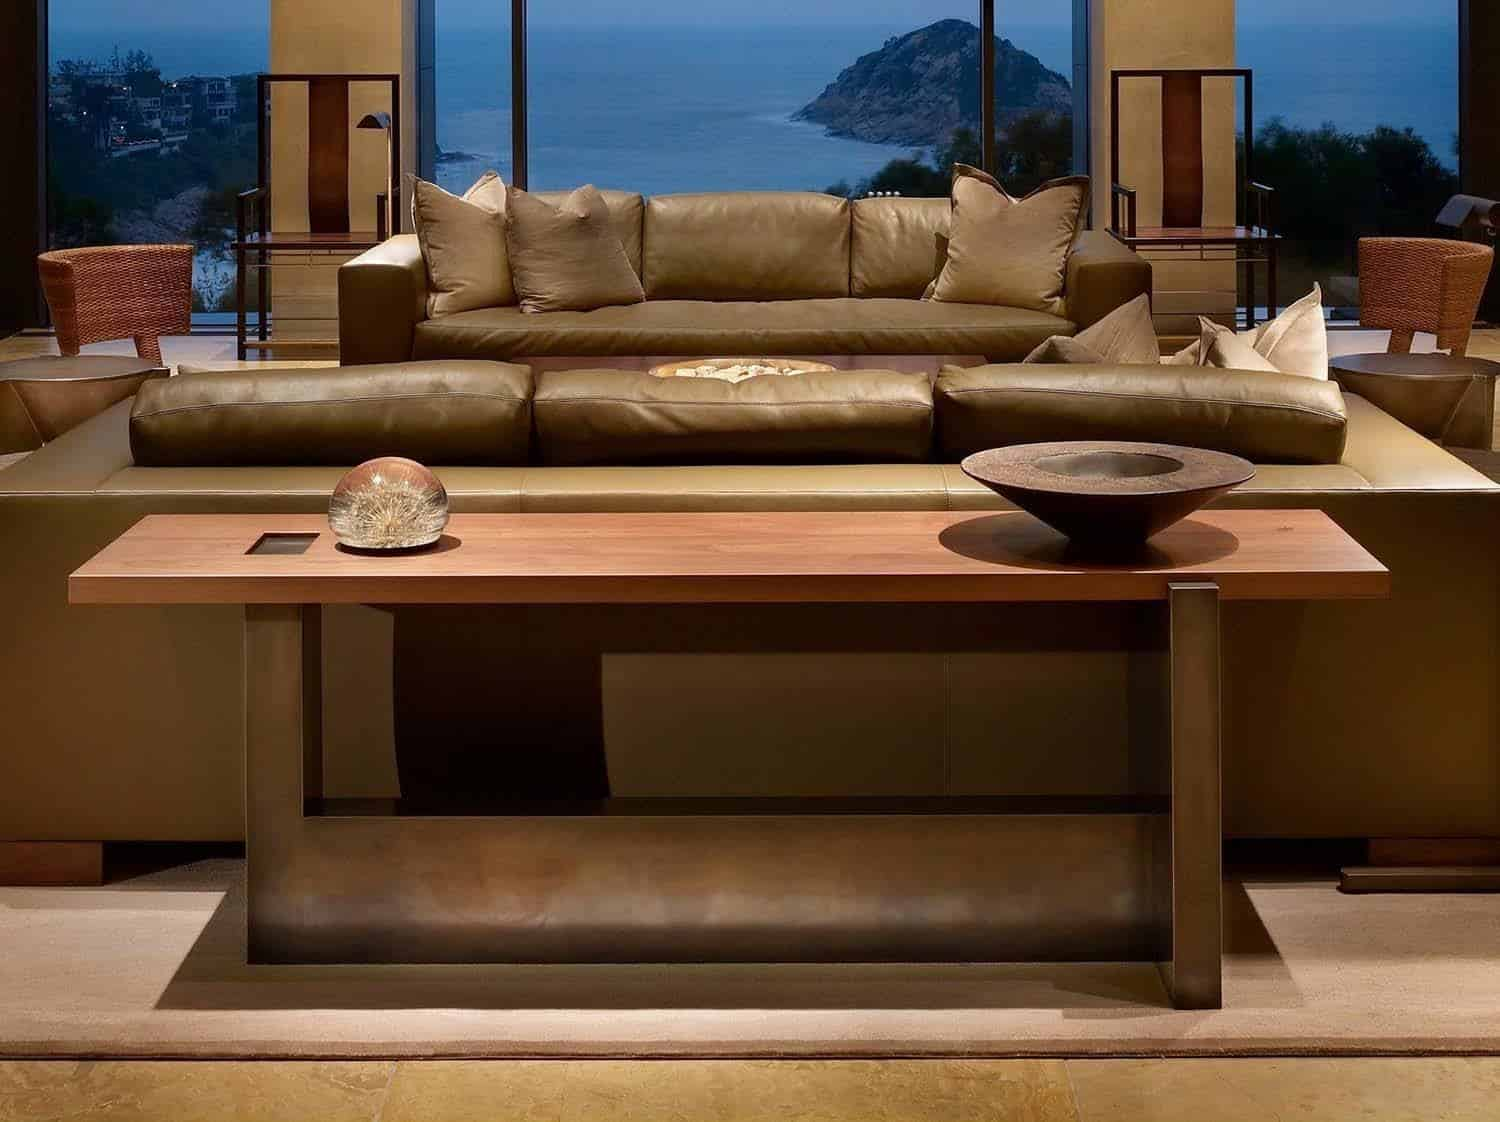 Hong Kong Villa-Olson Kundig Architects-13-1 Kindesign